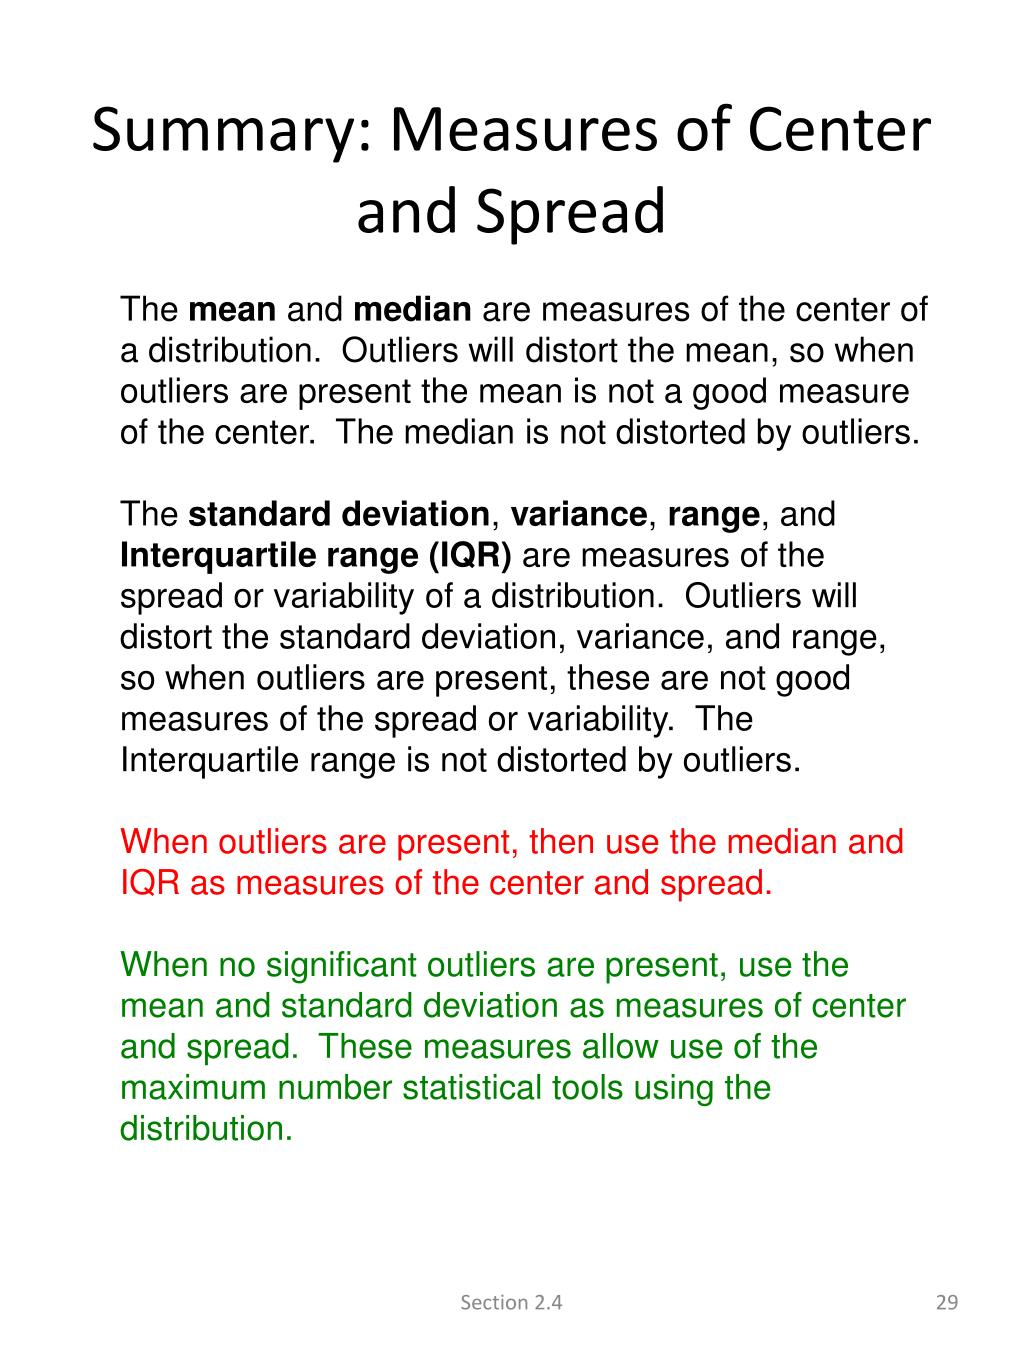 Summary: Measures of Center and Spread